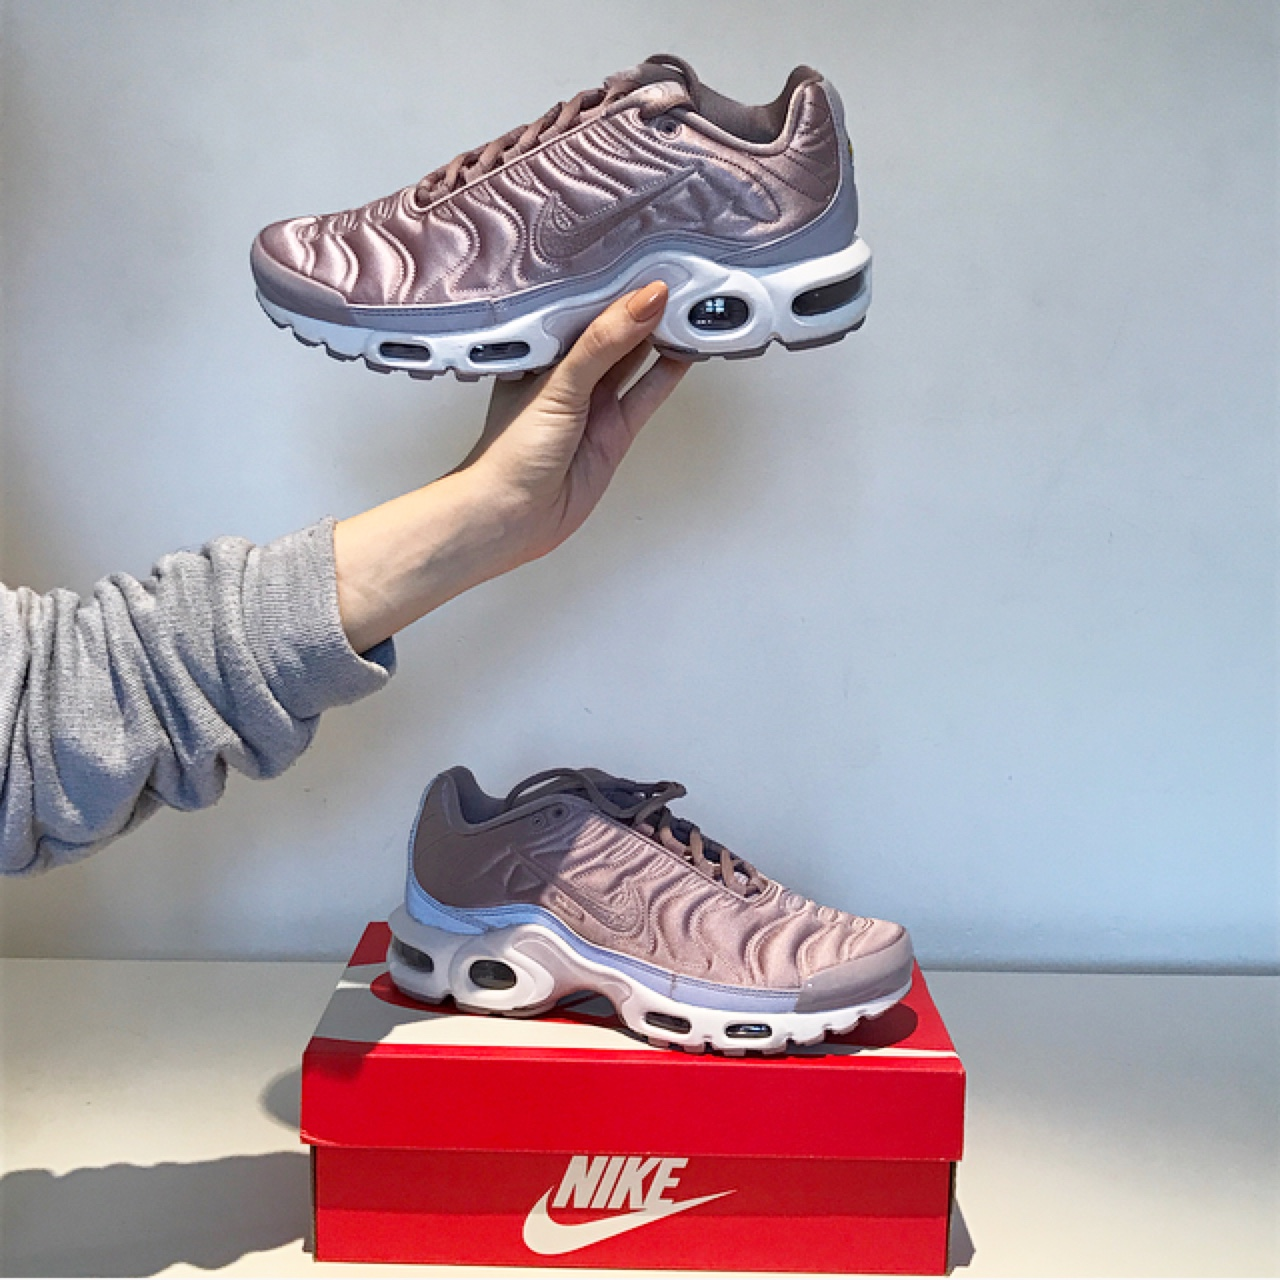 undefeated x quality products attractive price Nike Air Max Plus 'Satin Pack' in Plum Fog / Pink -... - Depop